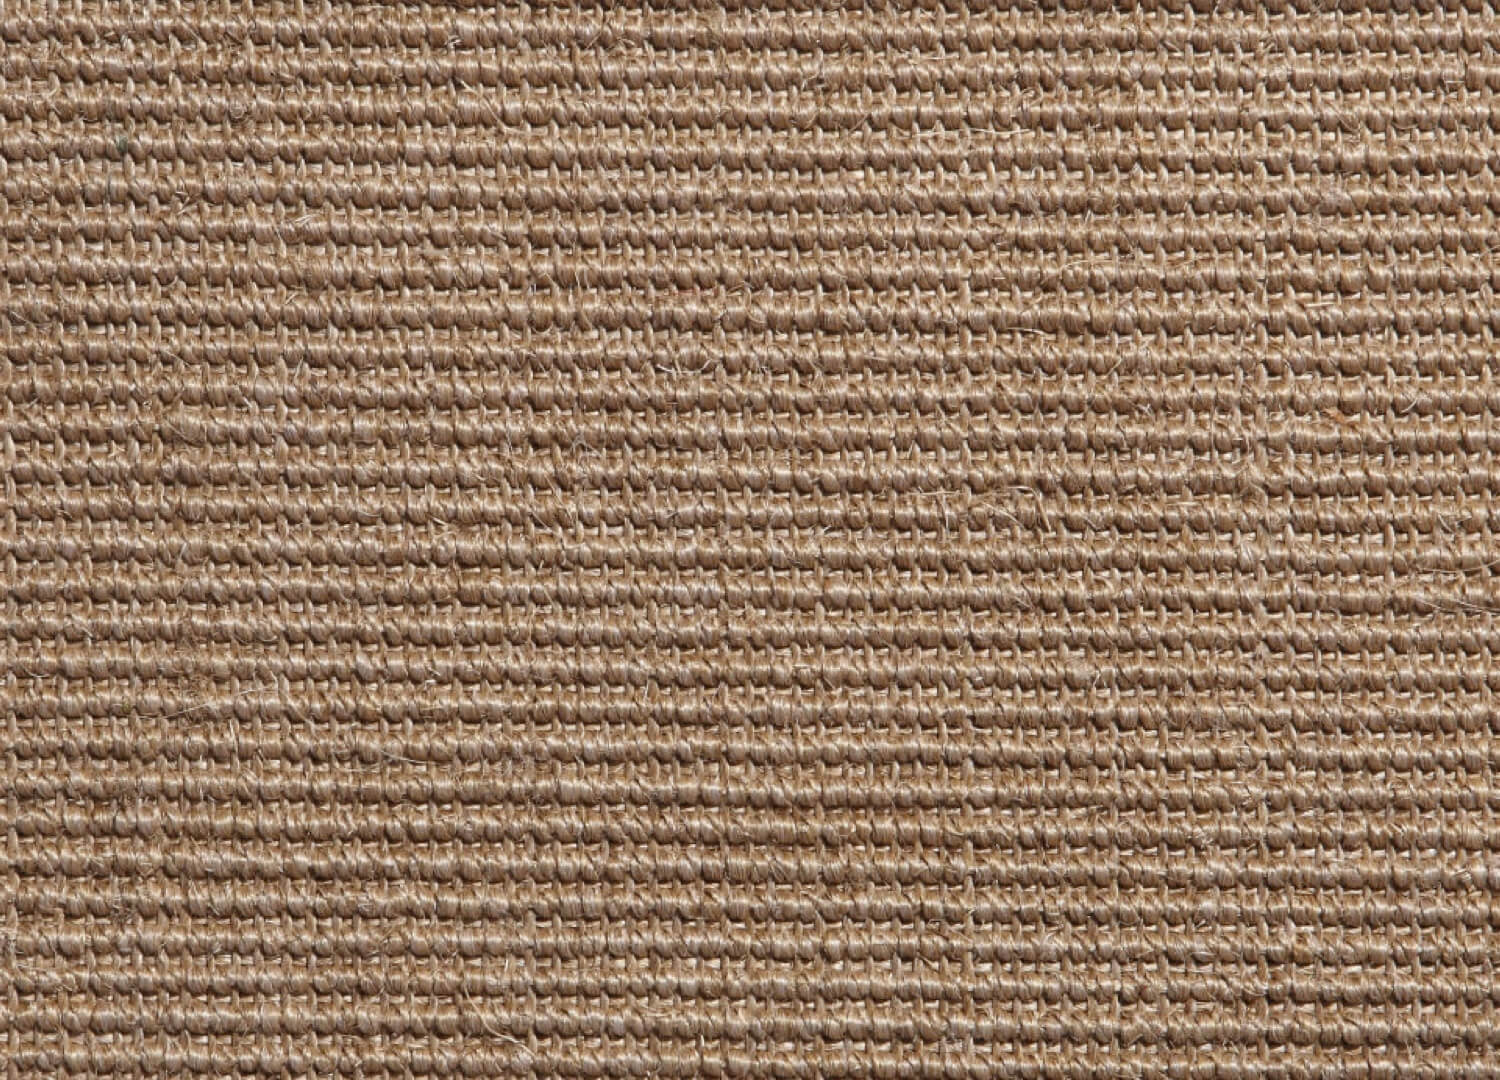 Marled Taupe Sisal Carpet By Natural Floorcovering Centres